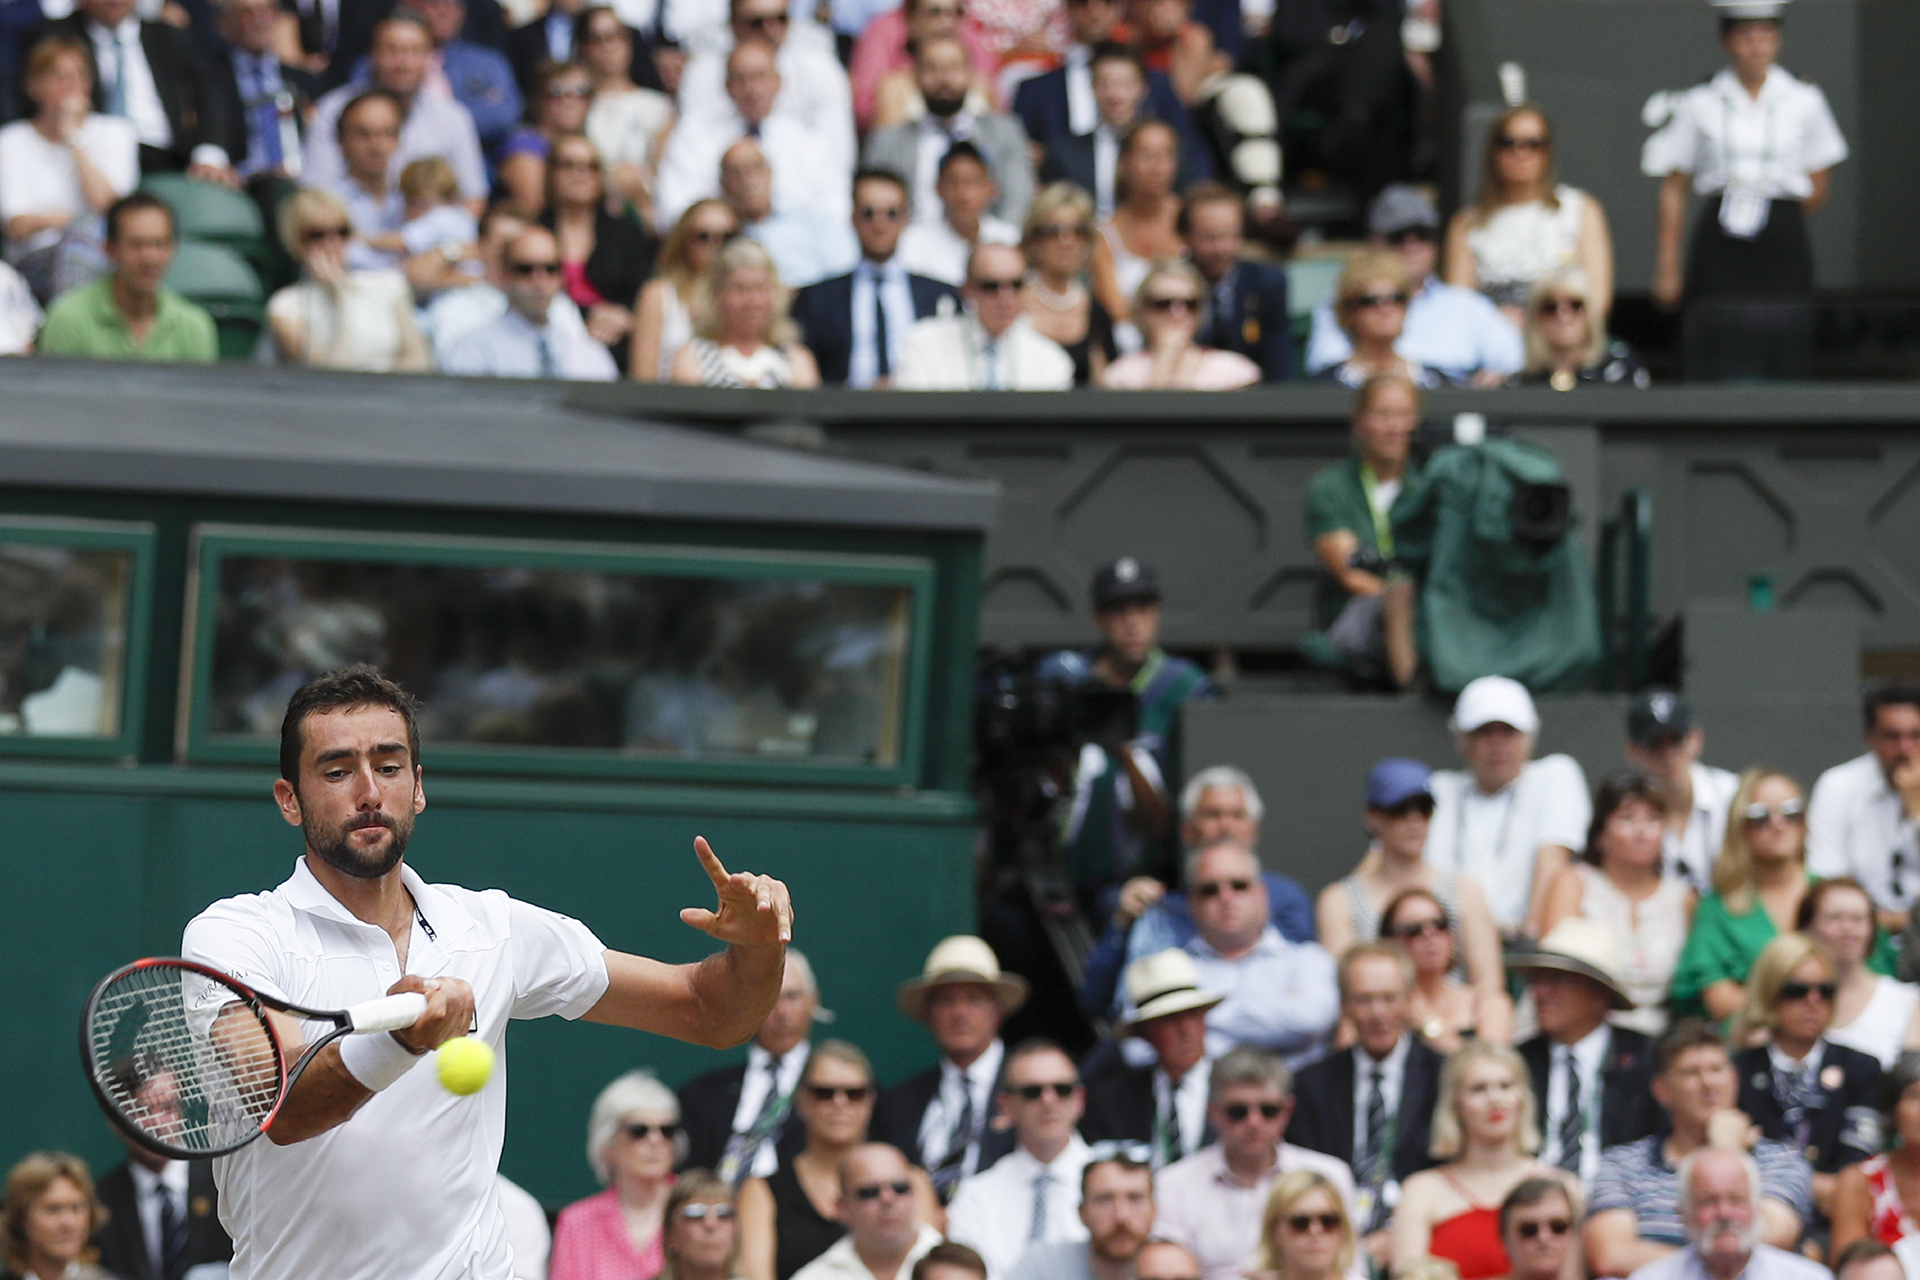 Croatia's Marin Cilic returns against Switzerland's Roger Federer during their men's singles final match on the last day of the 2017 Wimbledon Championships at The All England Lawn Tennis Club in Wimbledon, southwest London, on July 16, 2017. / AFP PHOTO / Adrian DENNIS / RESTRICTED TO EDITORIAL USE